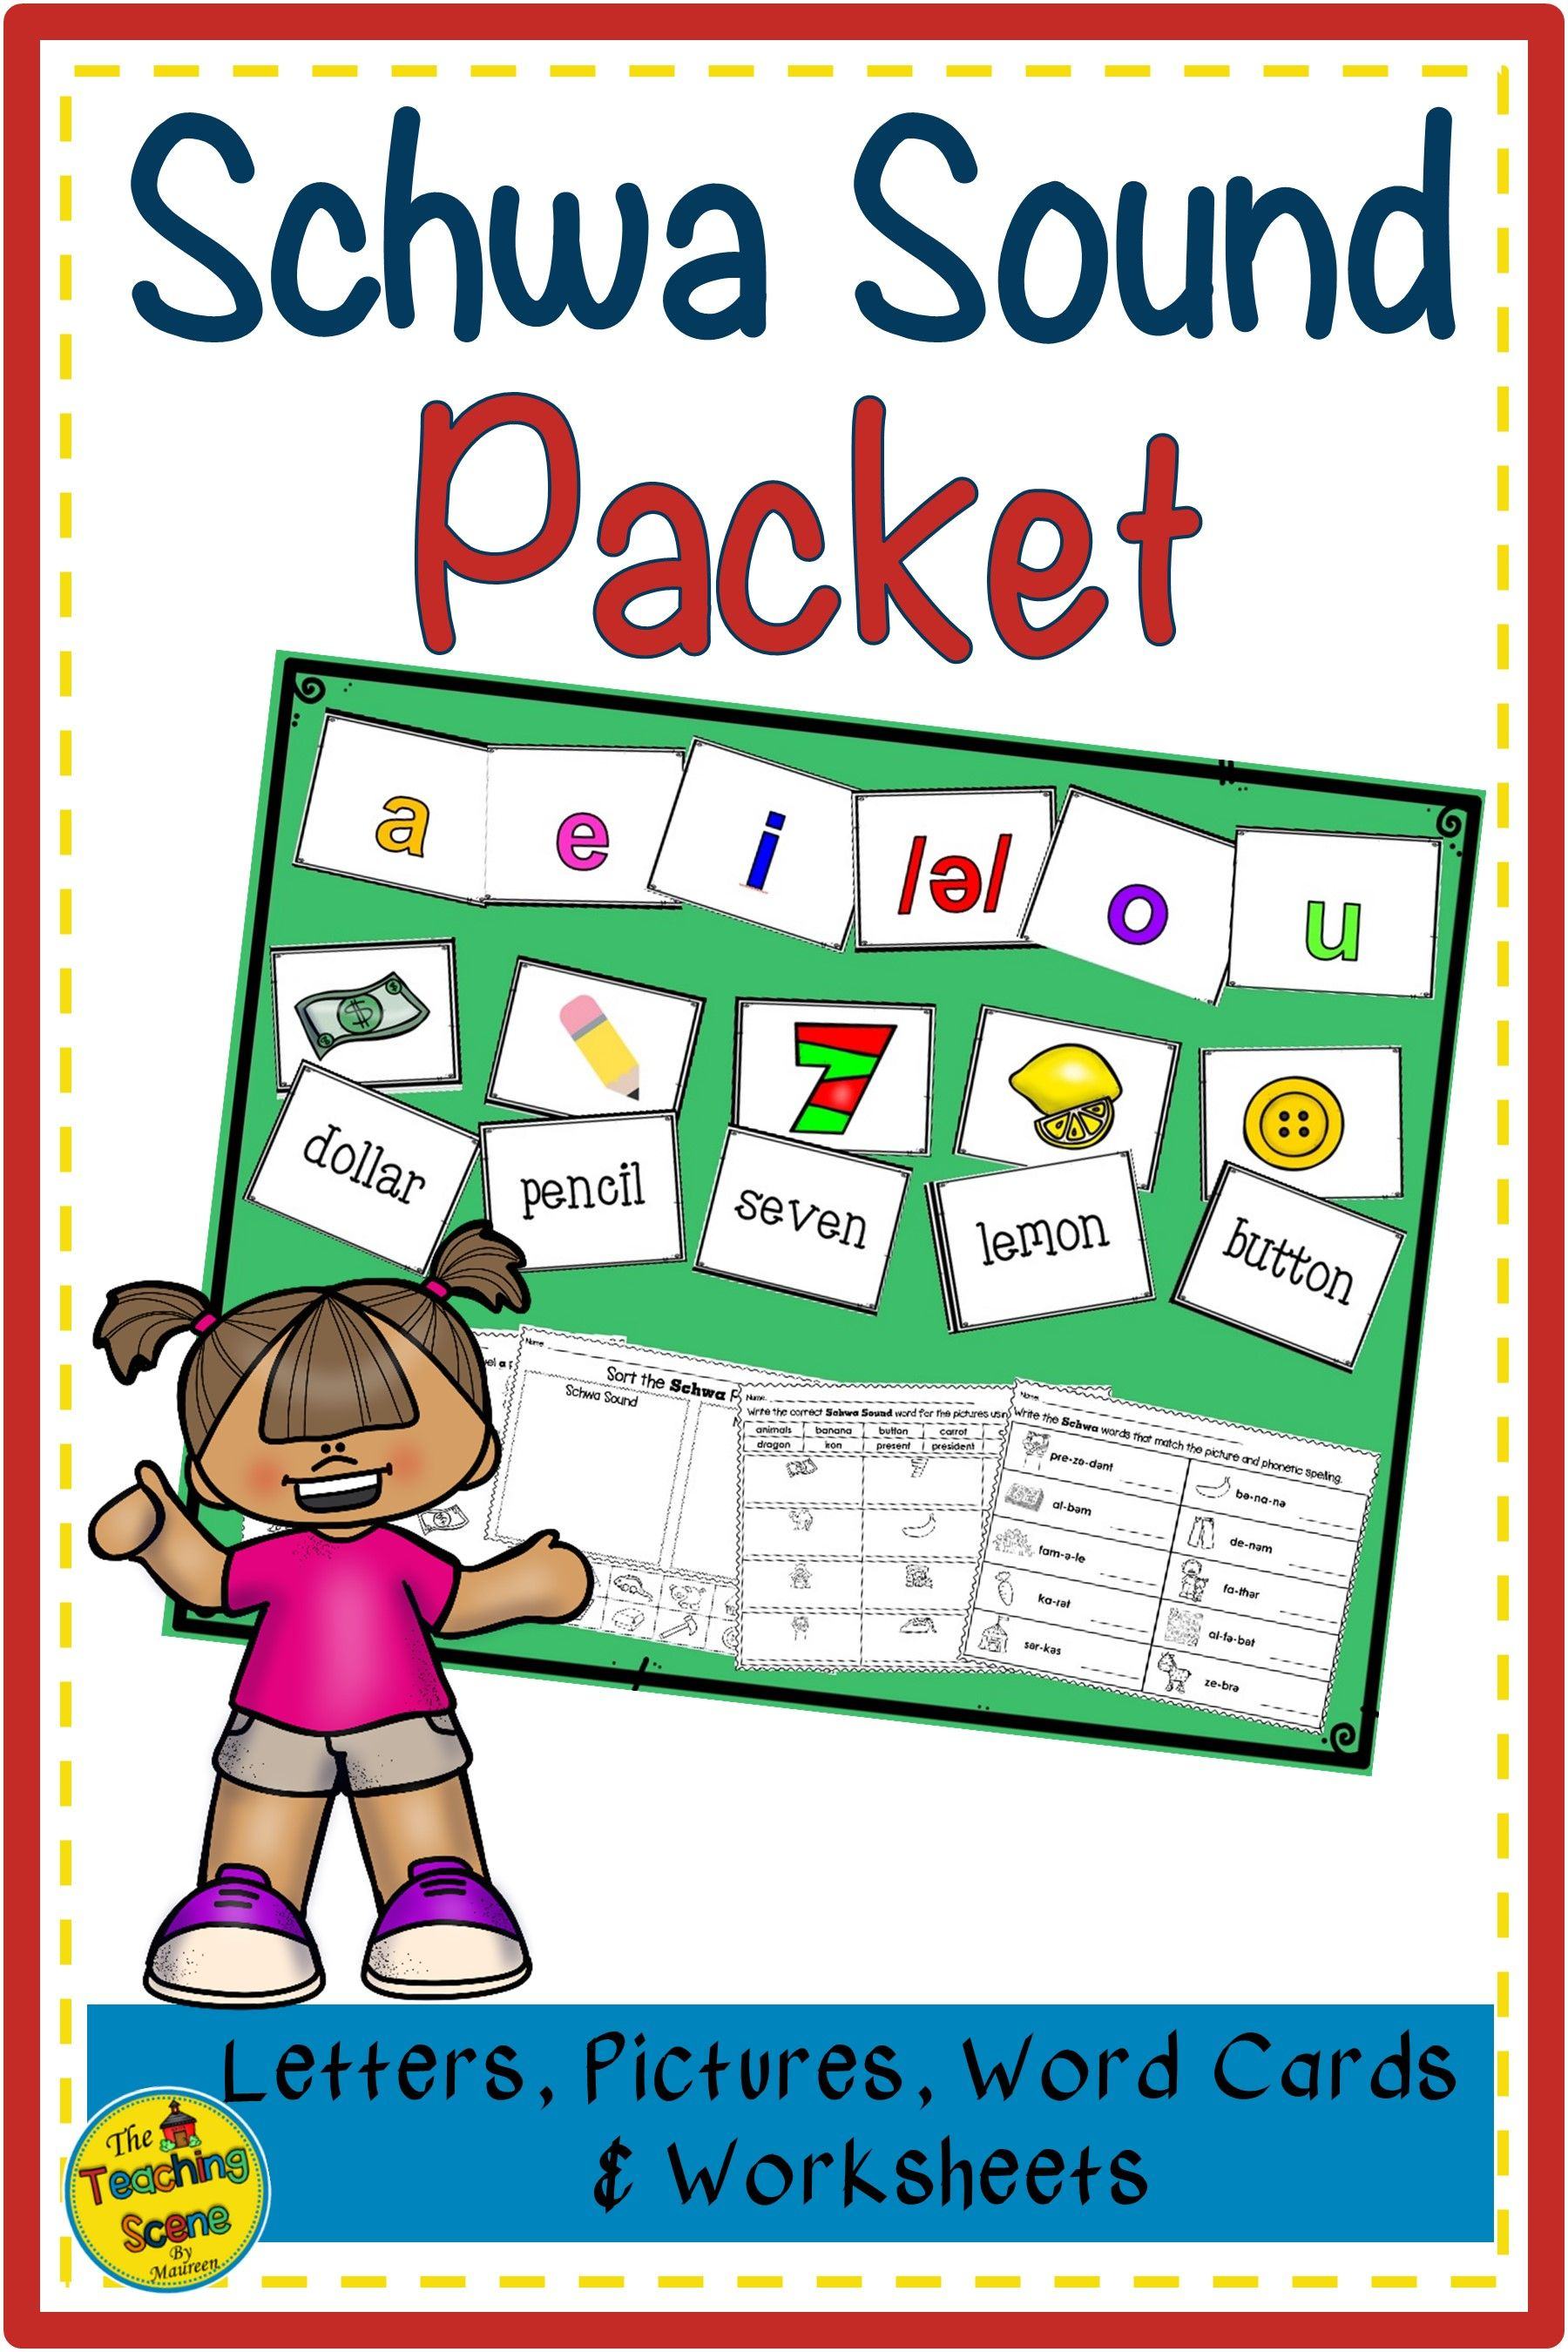 Schwa Sound Packet Letters Pictures Words Amp Worksheets